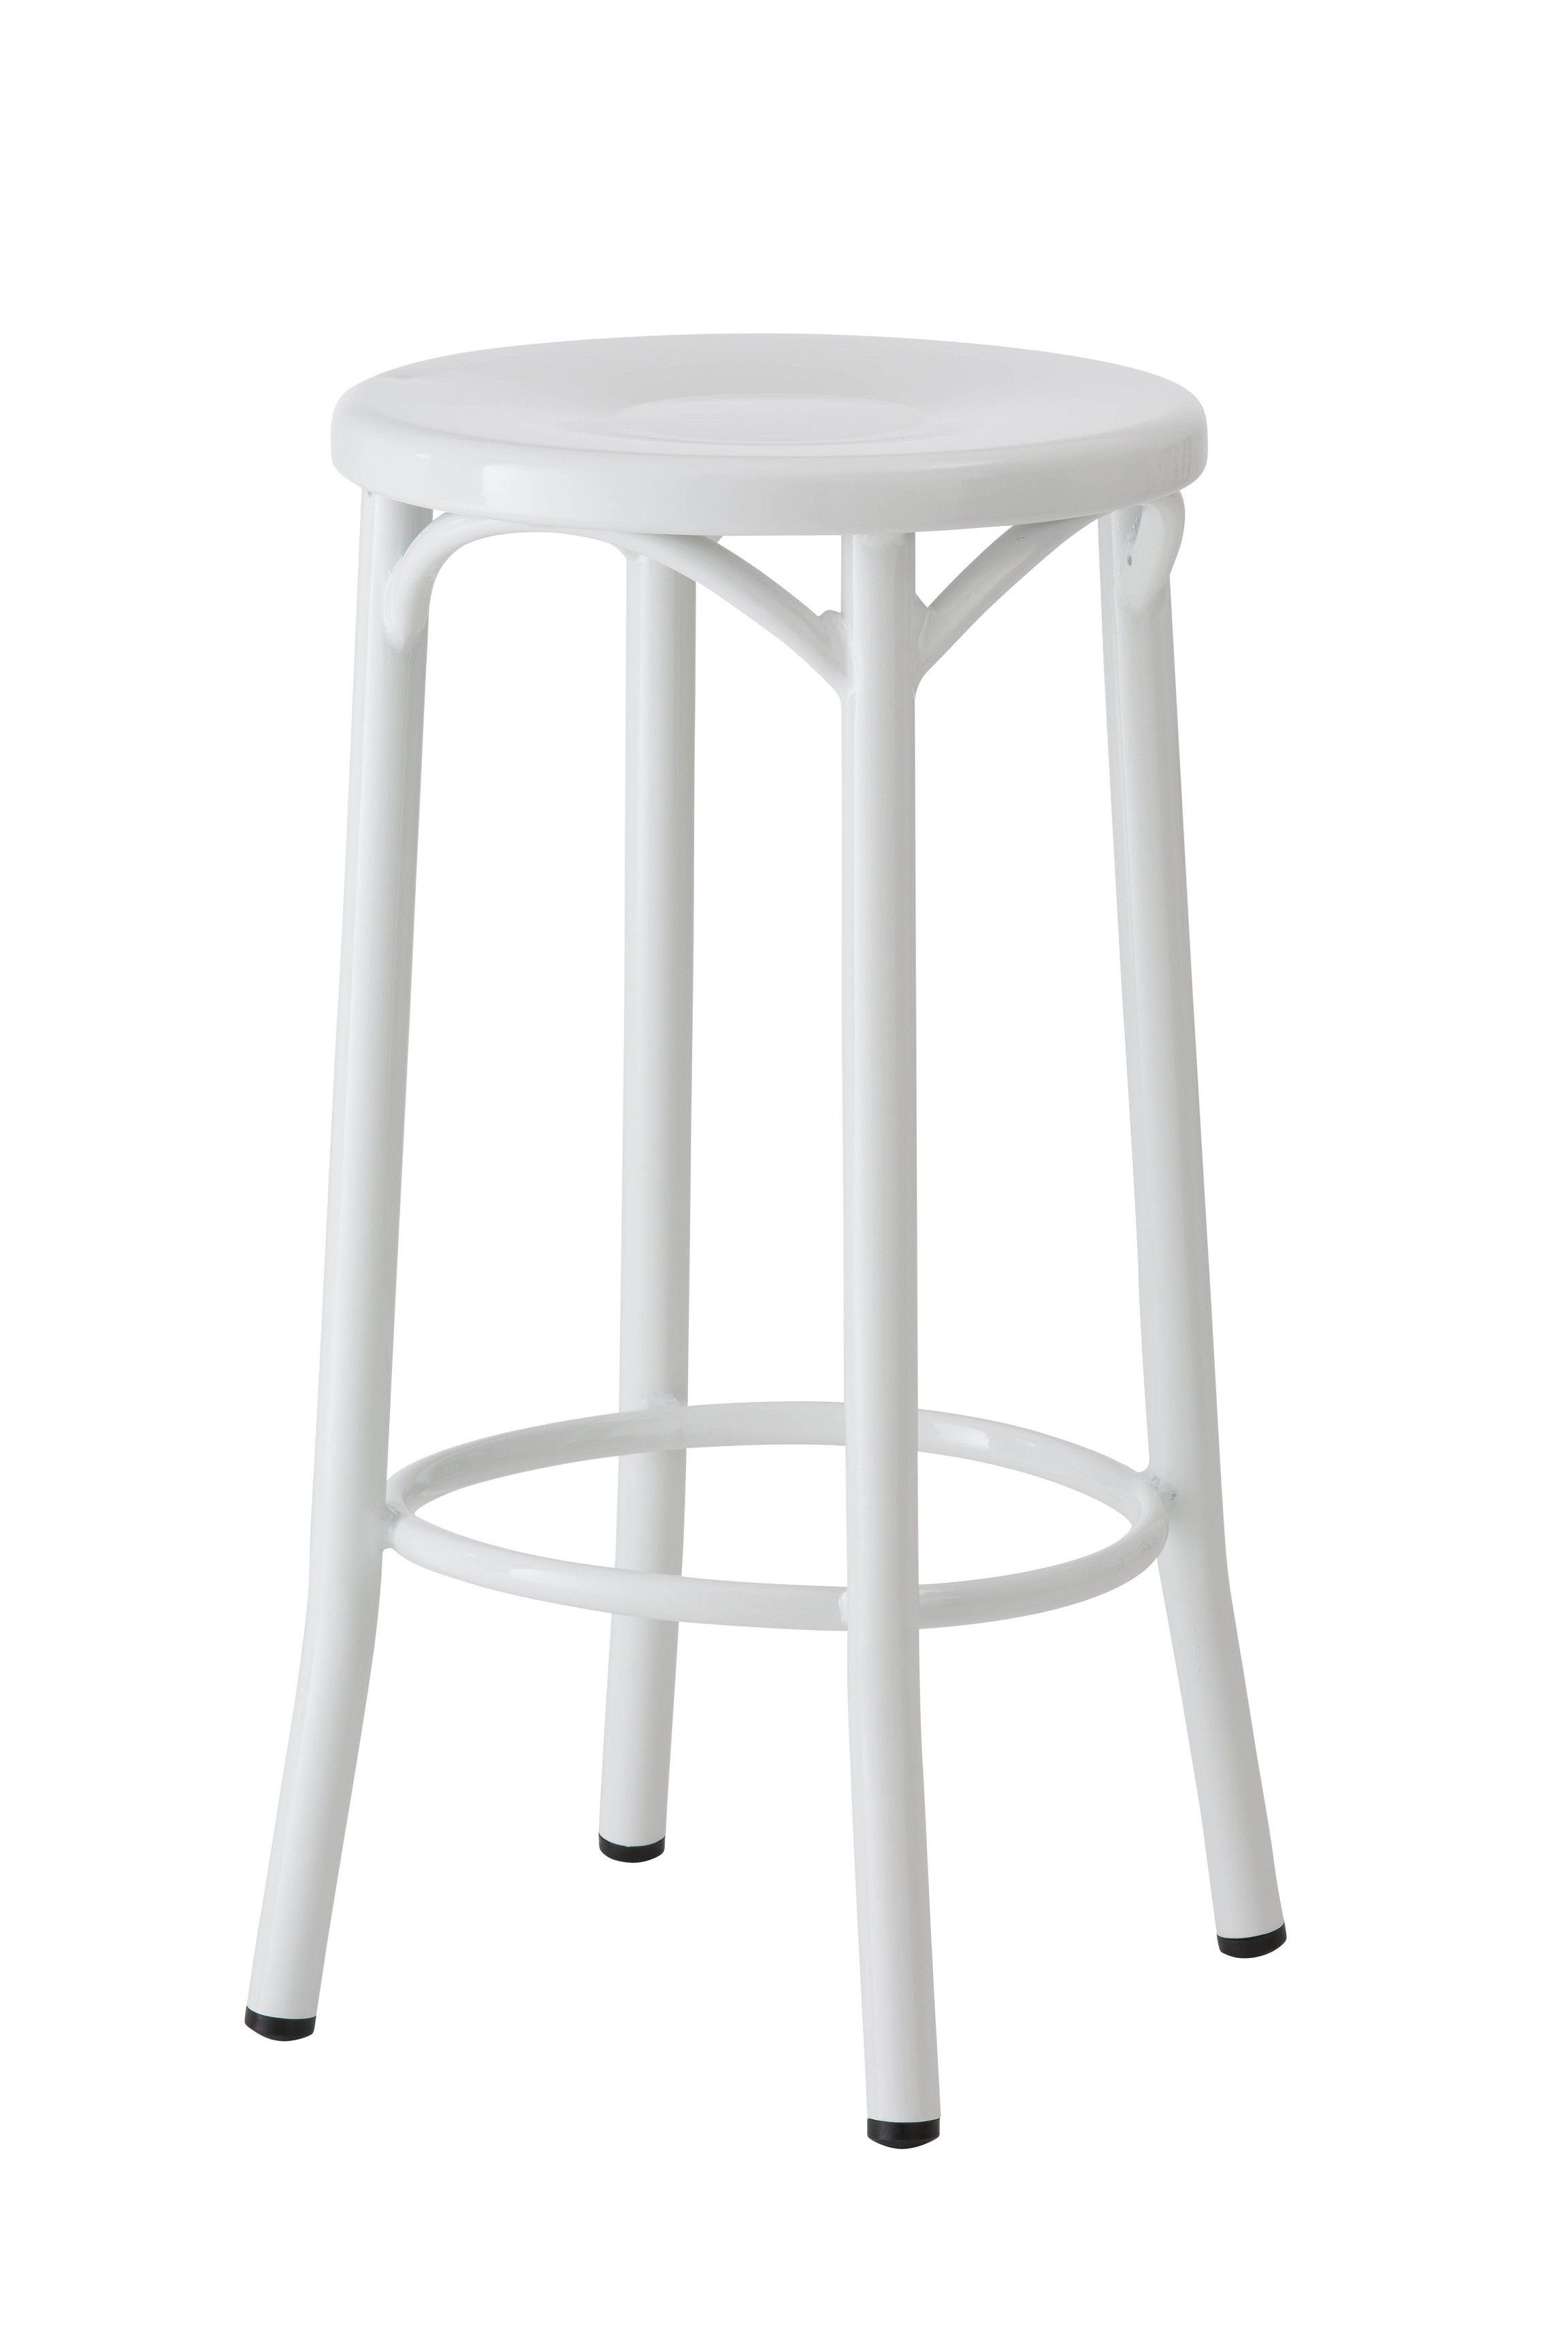 Searching for a replica Paris bentwood stool? This sturdy stool is made from premium powder coated metal and is ideal for your kitchen bench.  sc 1 st  Pinterest & Paris Bentwood Steel Stool - Replica - 65cm - White -- Our Replica ... islam-shia.org